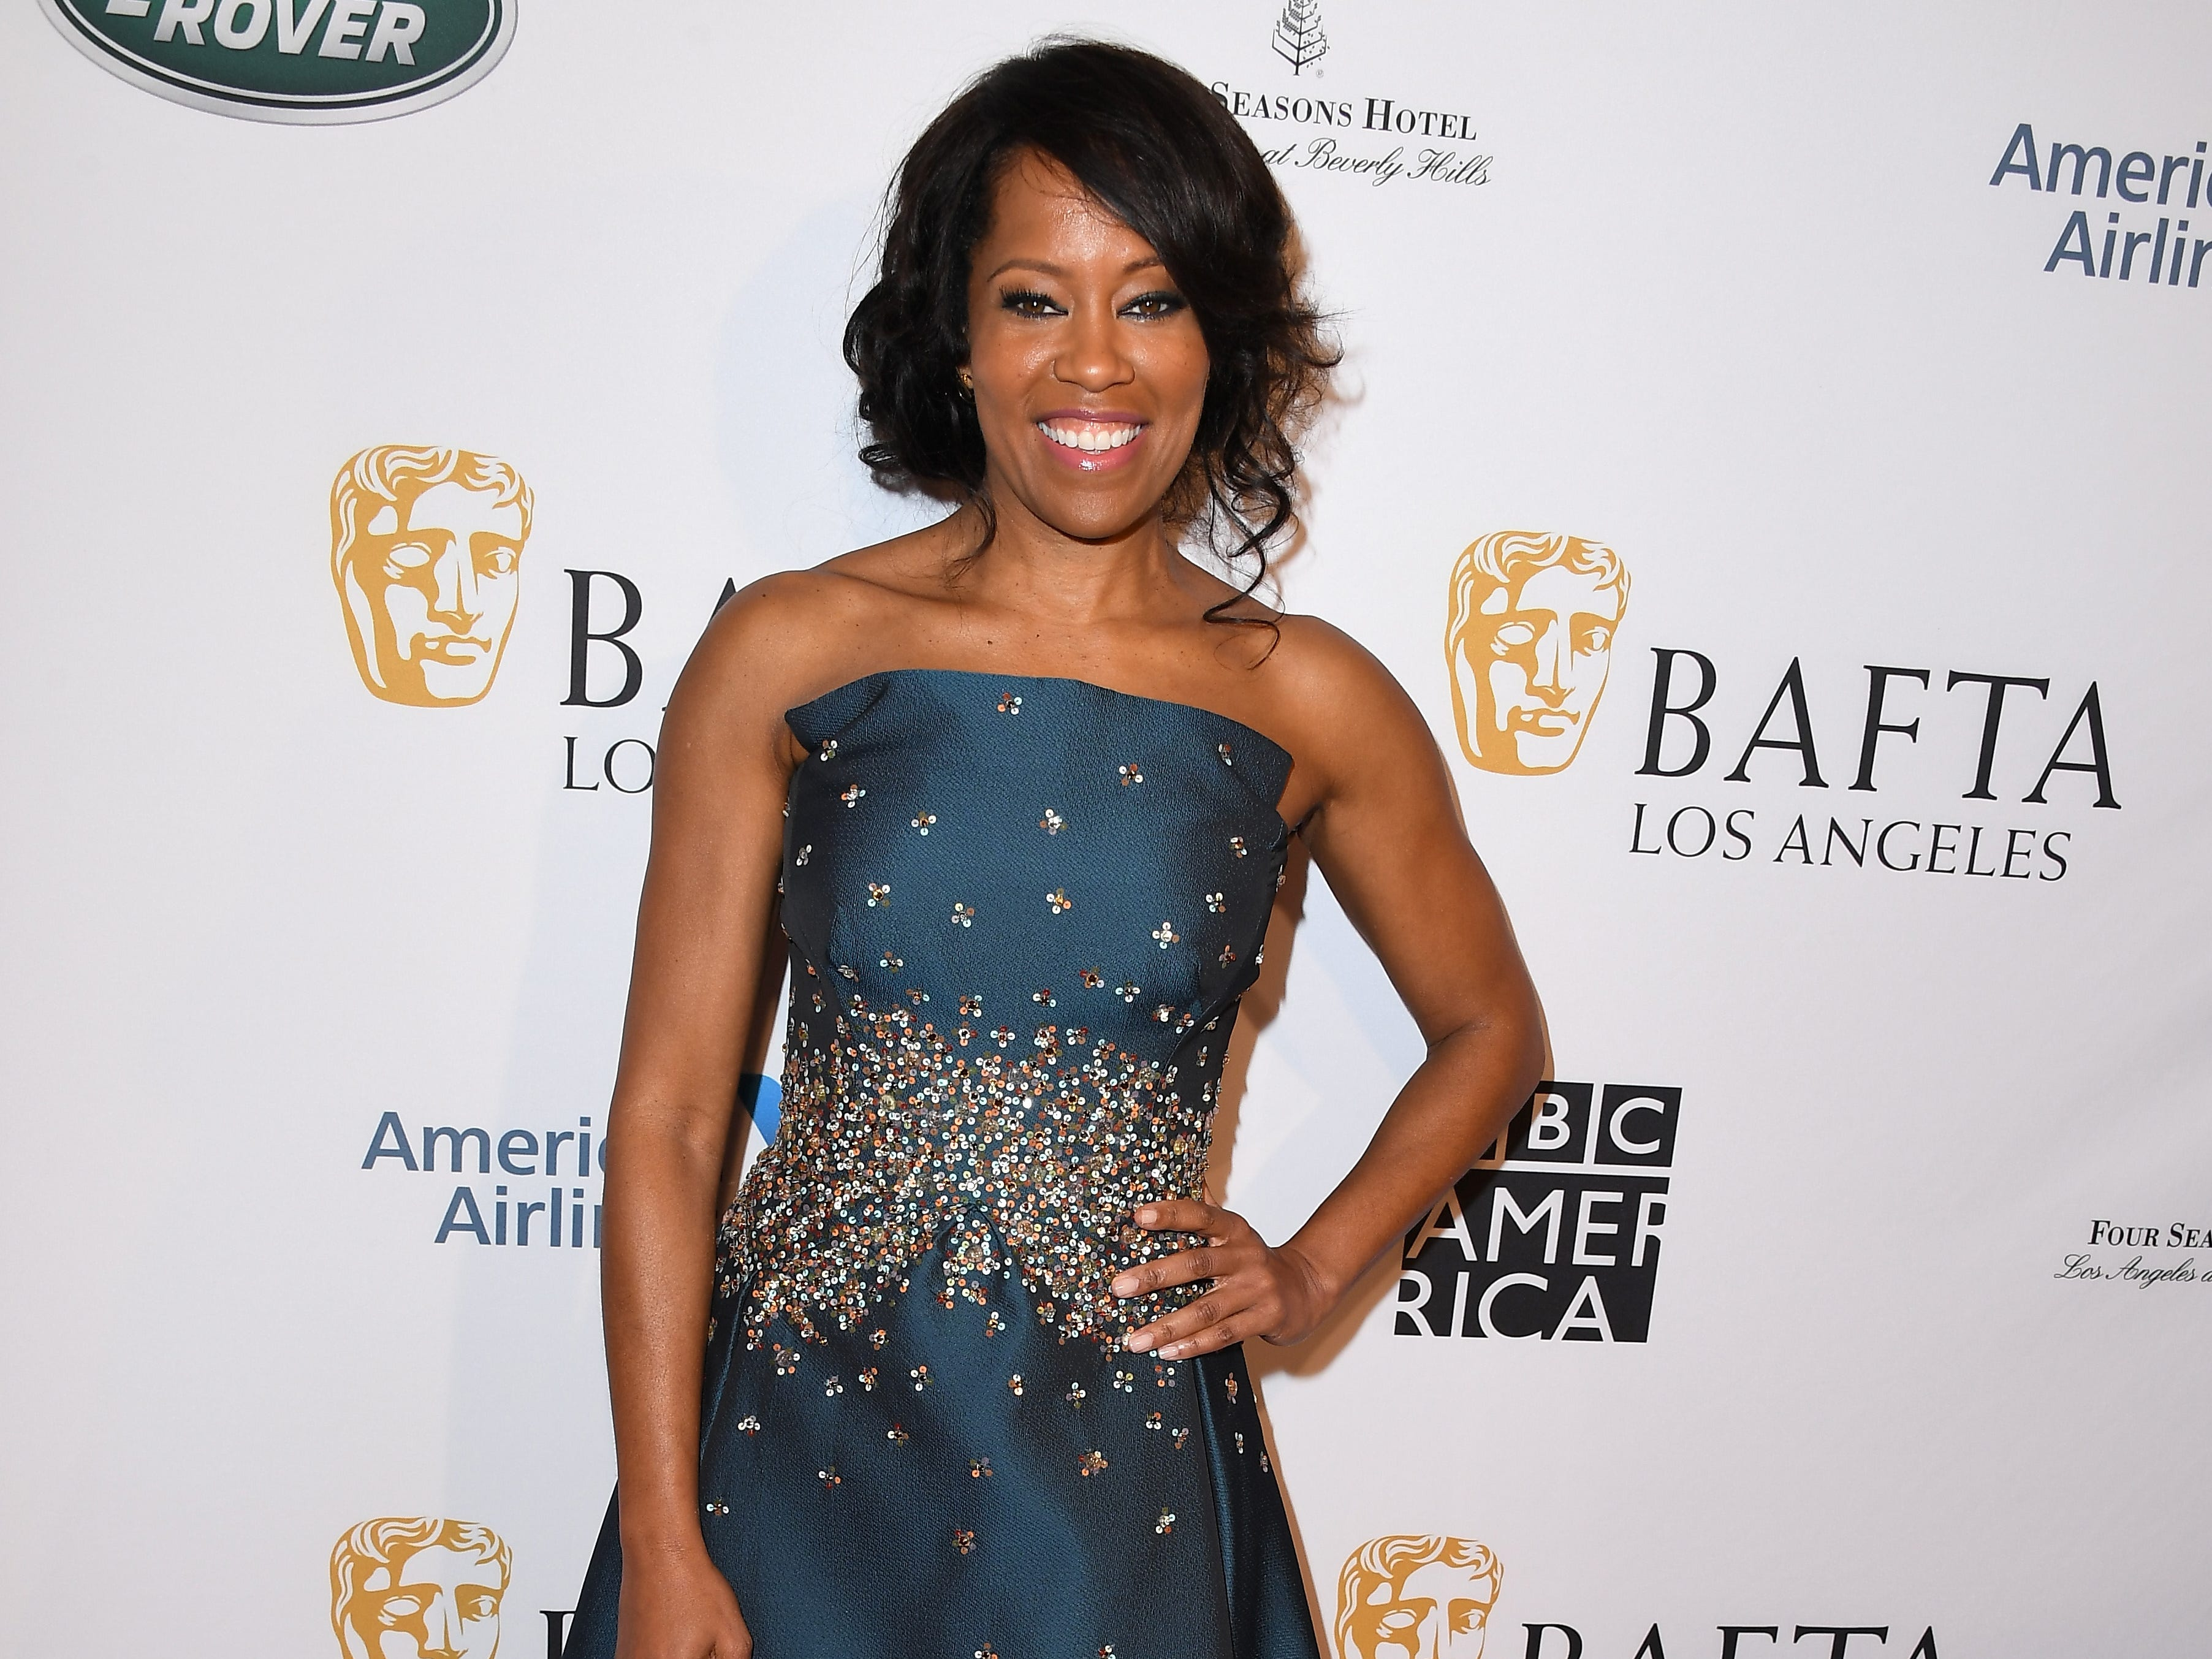 LOS ANGELES, CA - JANUARY 05:  Regina King attends The BAFTA Los Angeles Tea Party at Four Seasons Hotel Los Angeles at Beverly Hills on January 5, 2019 in Los Angeles, California.  (Photo by Steve Granitz/WireImage) ORG XMIT: 775261683 ORIG FILE ID: 1077924330